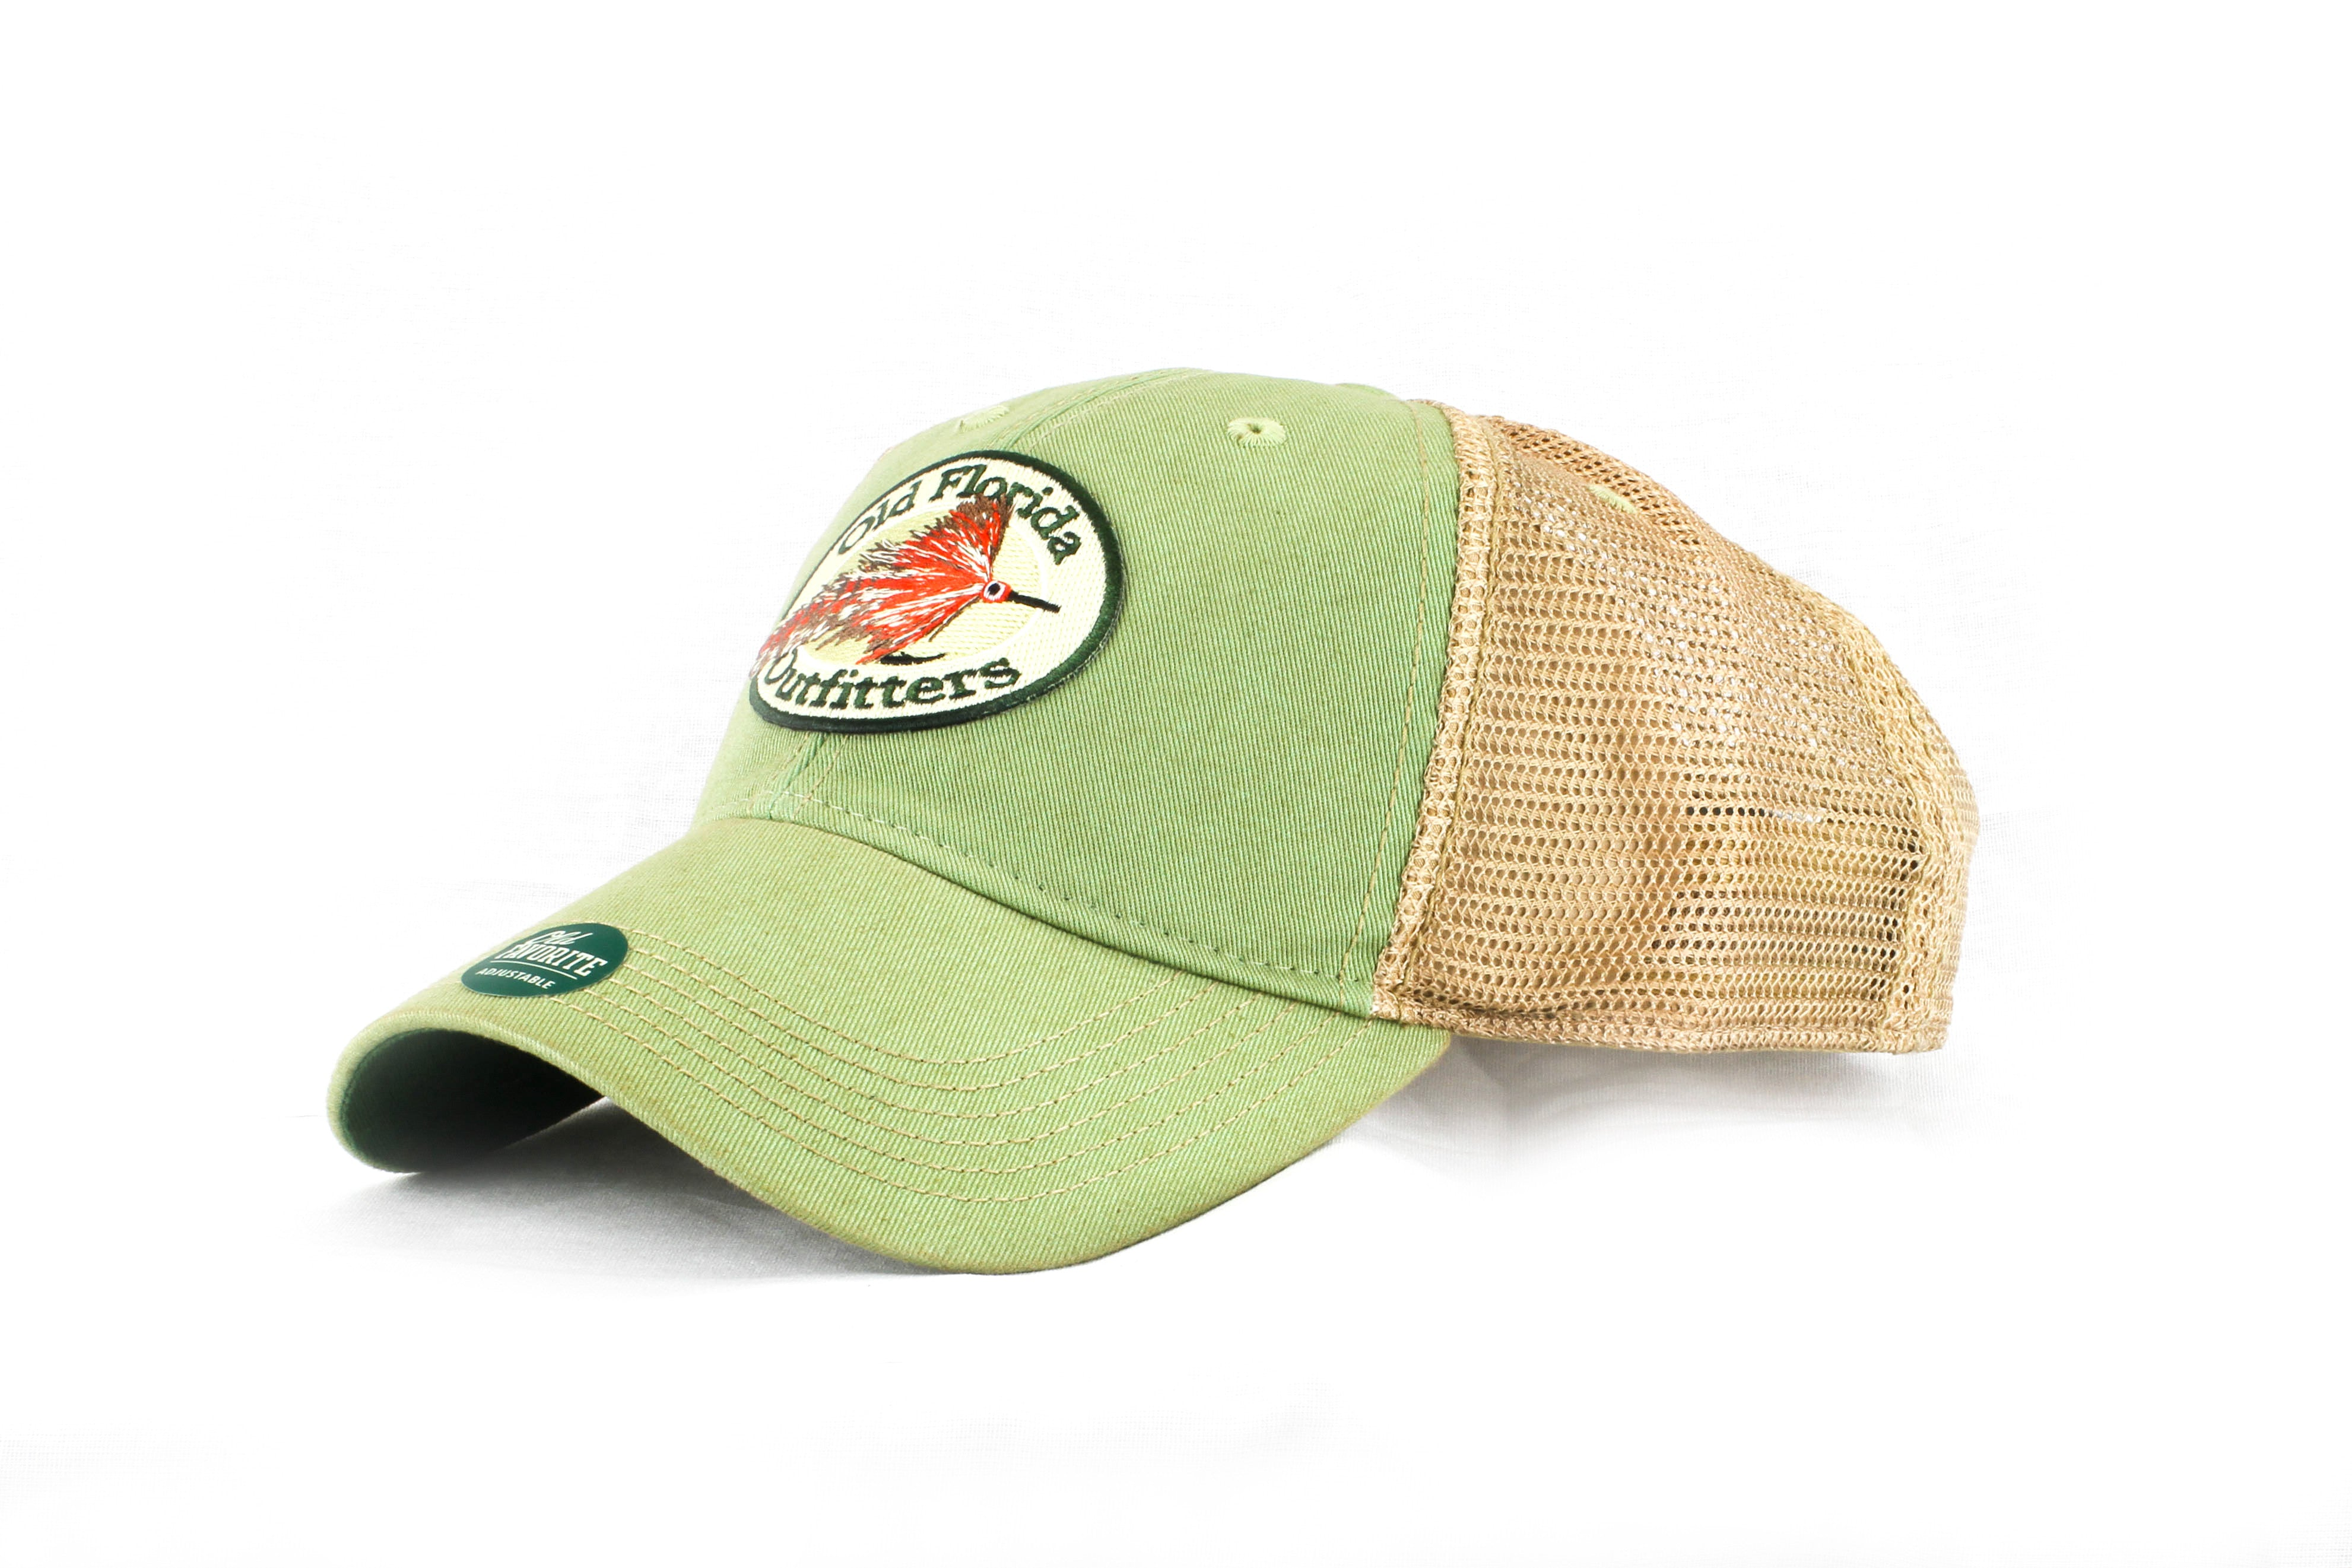 8fe02594035 OFO Logo OLD FAVORITE Soft Trucker in Sage - Old Florida Outfitters